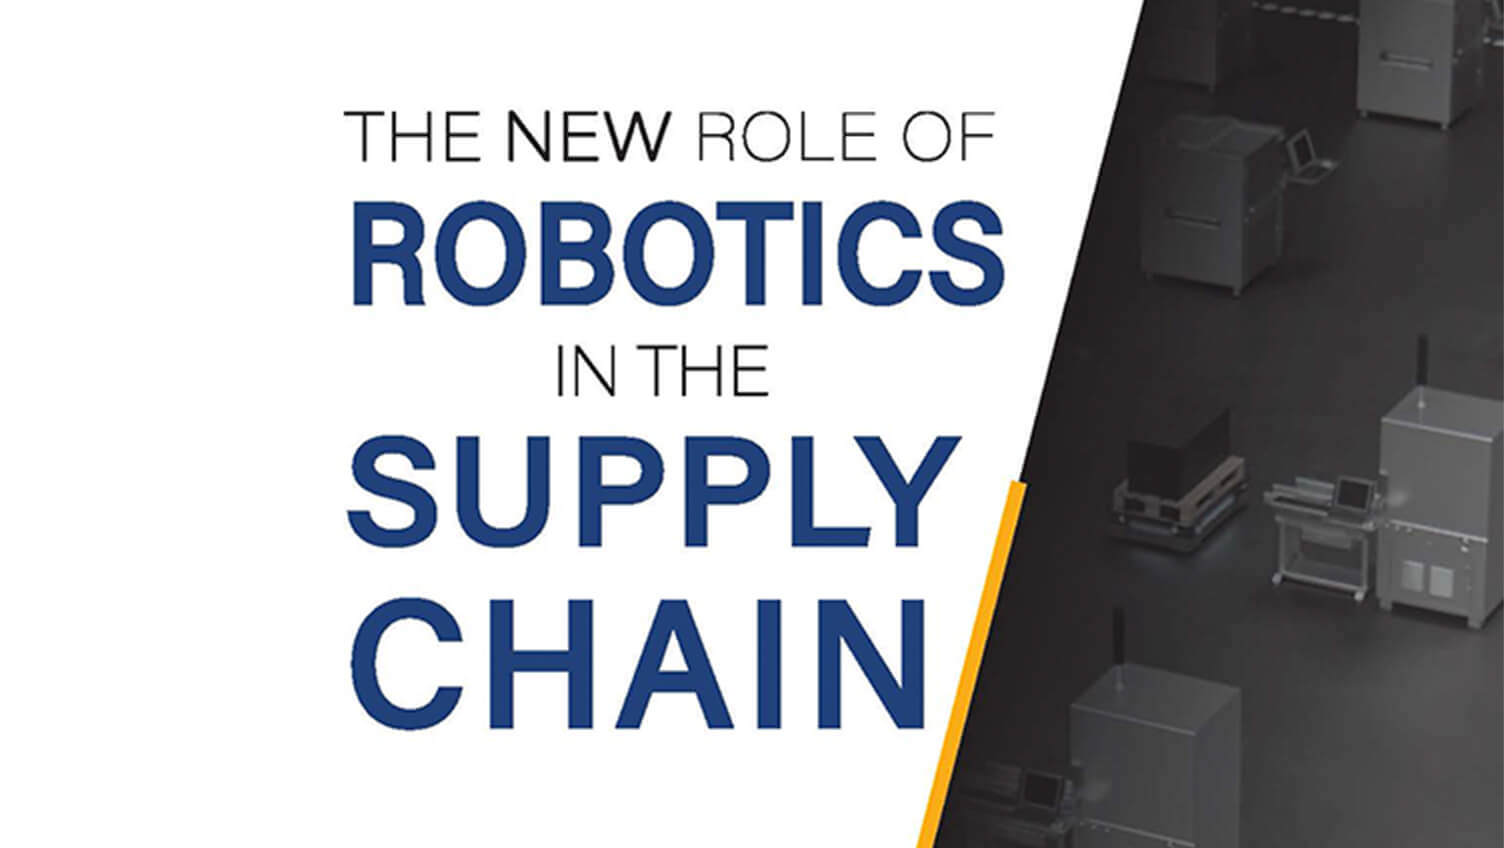 The New Role of Robotics in the Supply Chain